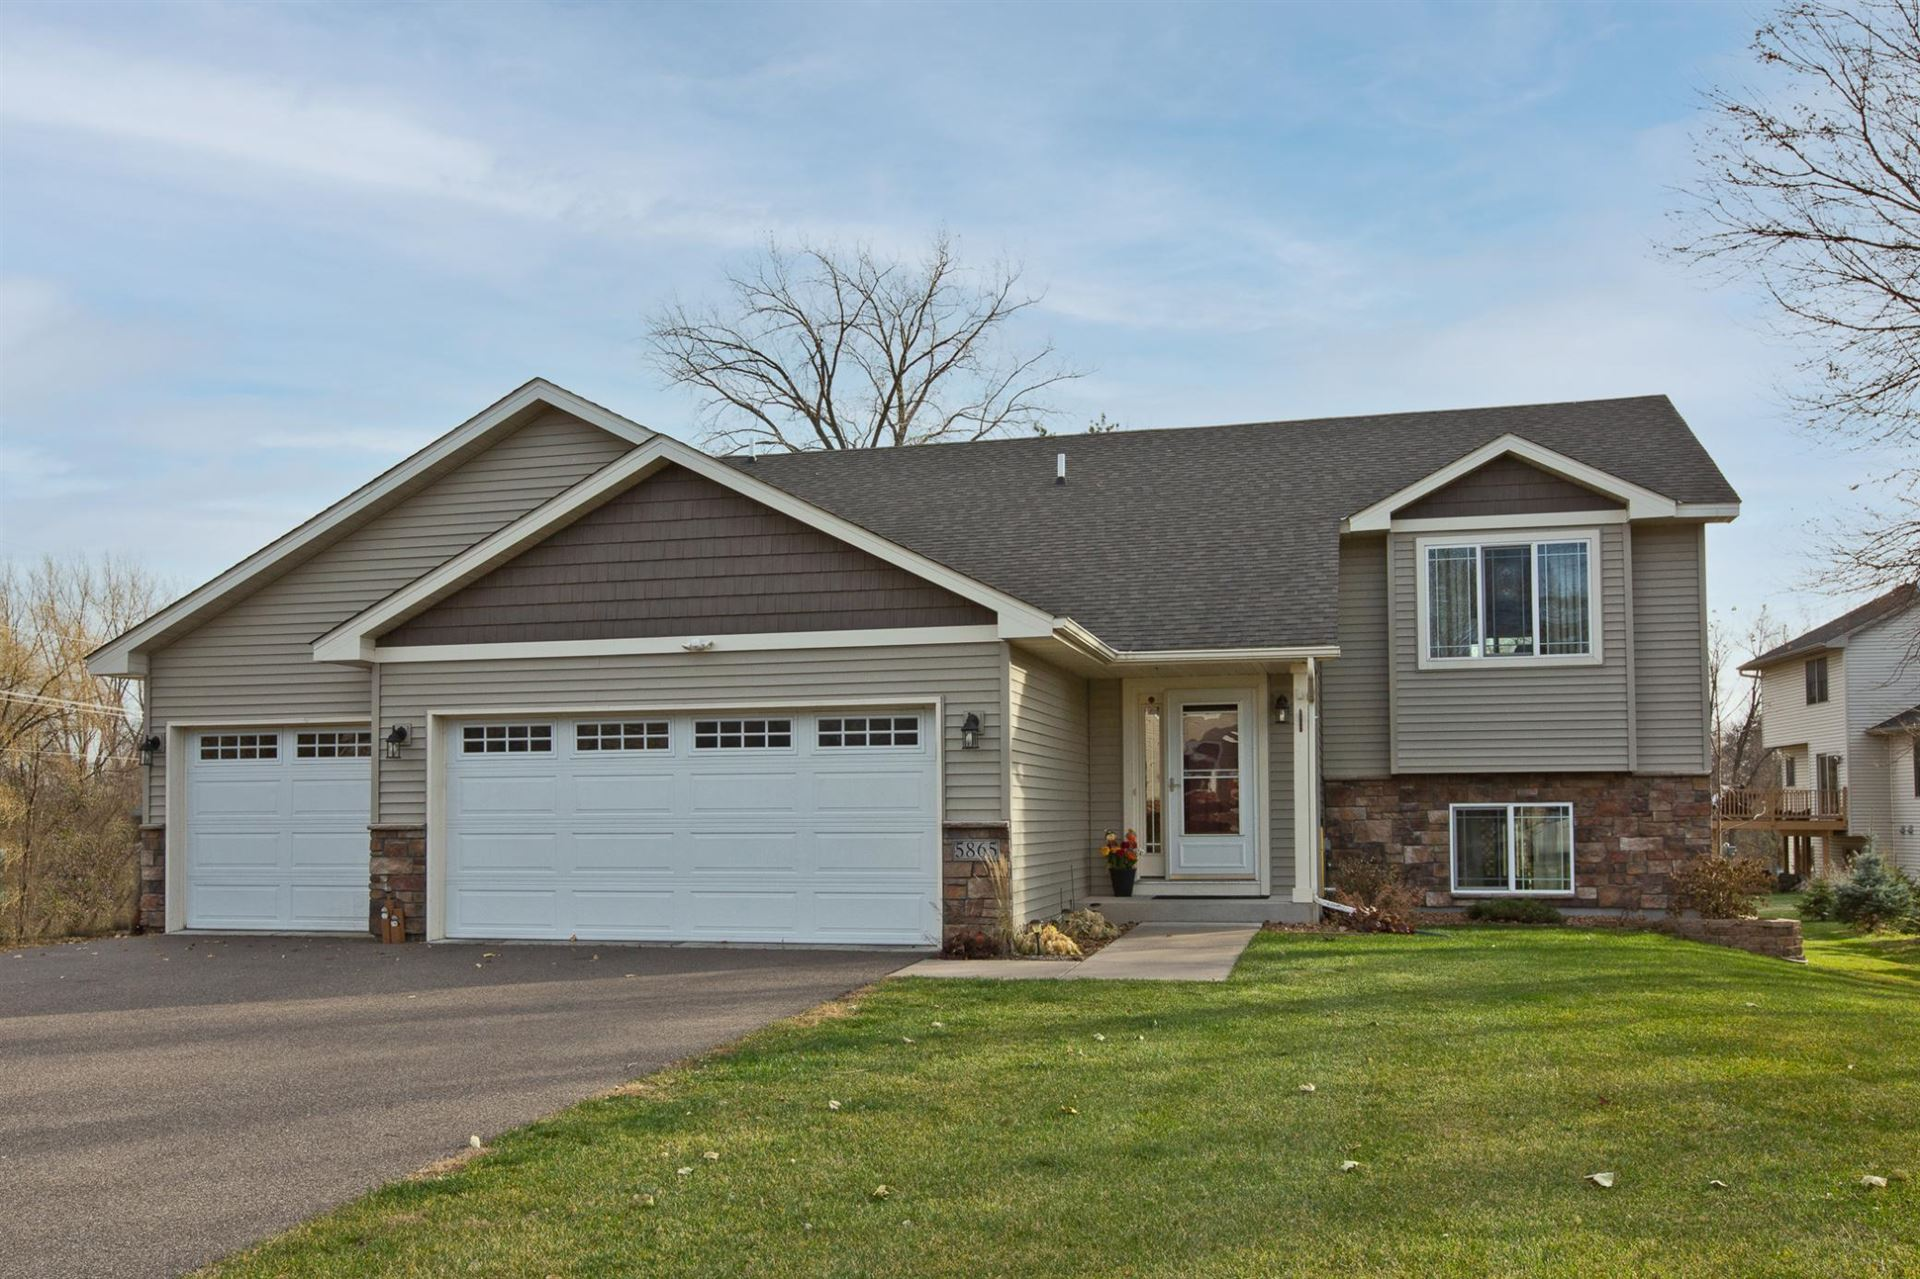 5865 212th Street N, Forest Lake, MN 55025 - MLS#: 5682690